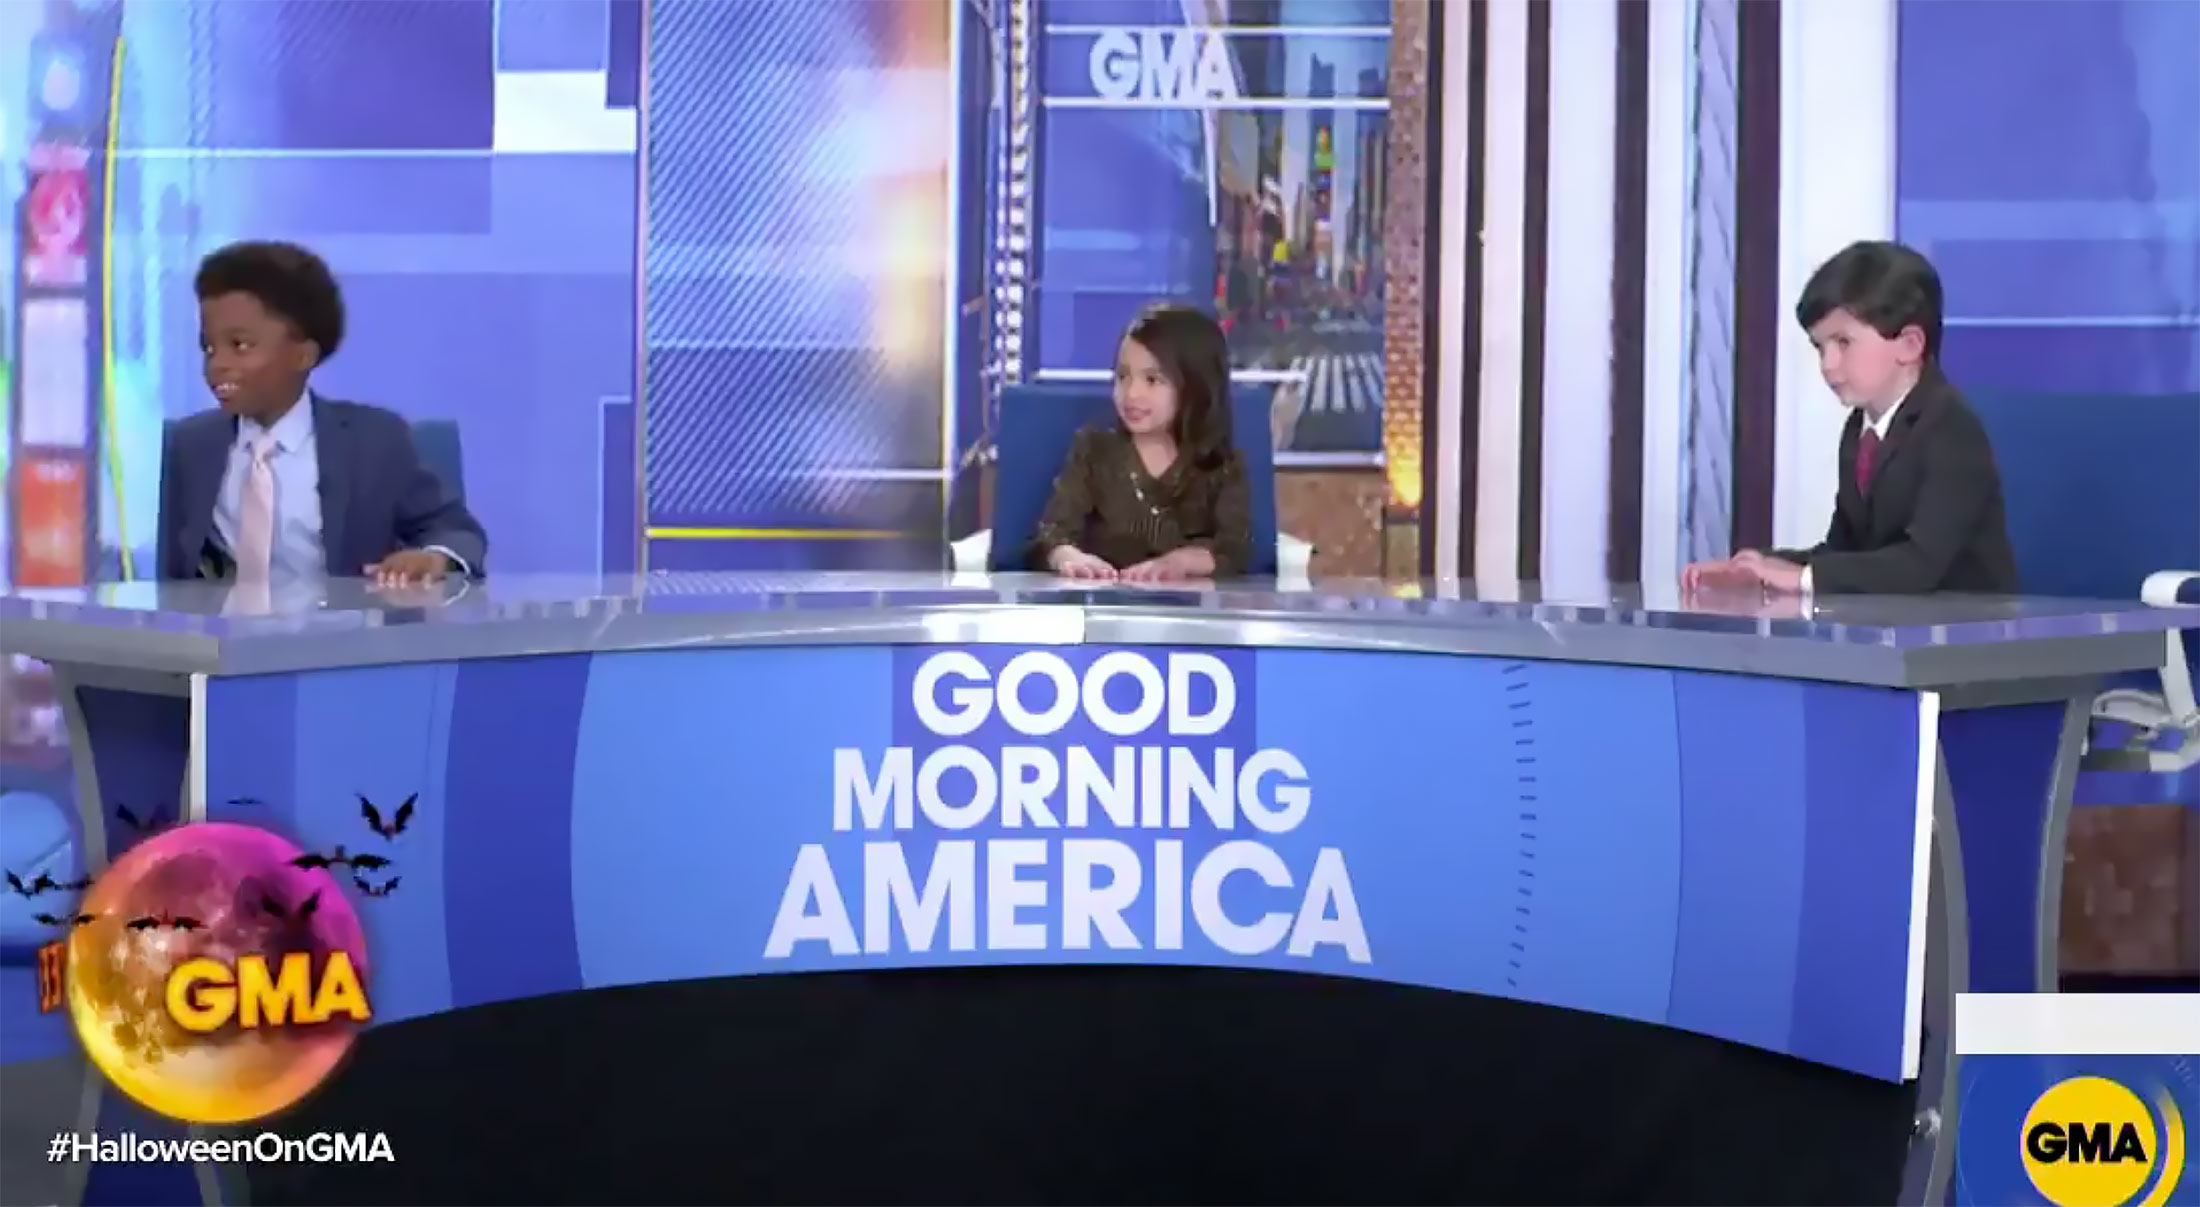 Halloween 2020 Morning Show GMA' Cohosts Replaced by Kids in Costume for Halloween 2020: Pics